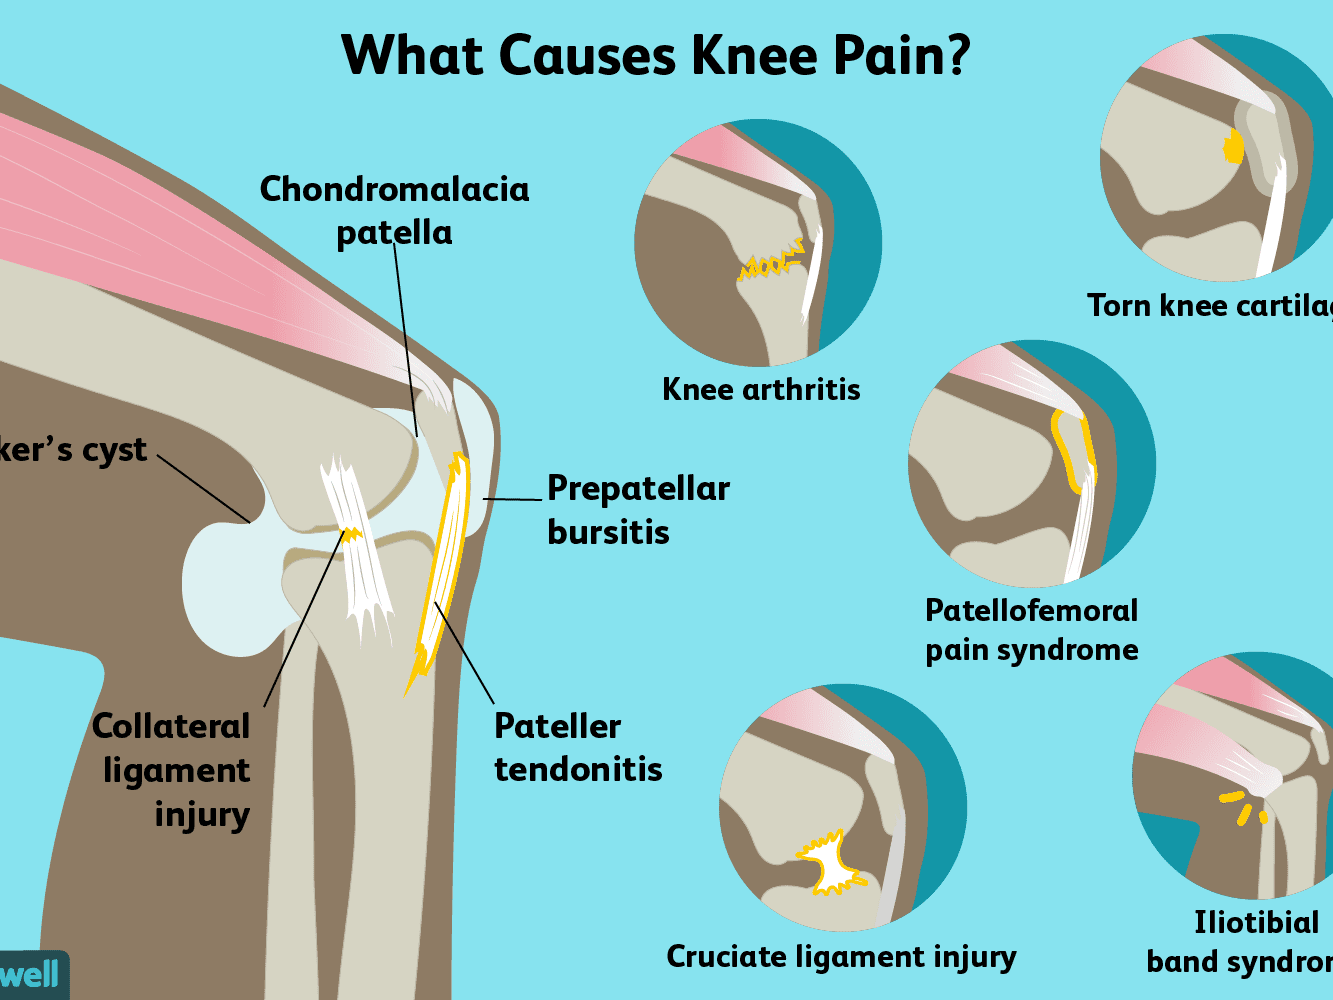 knees+are+sore+for+no+reason